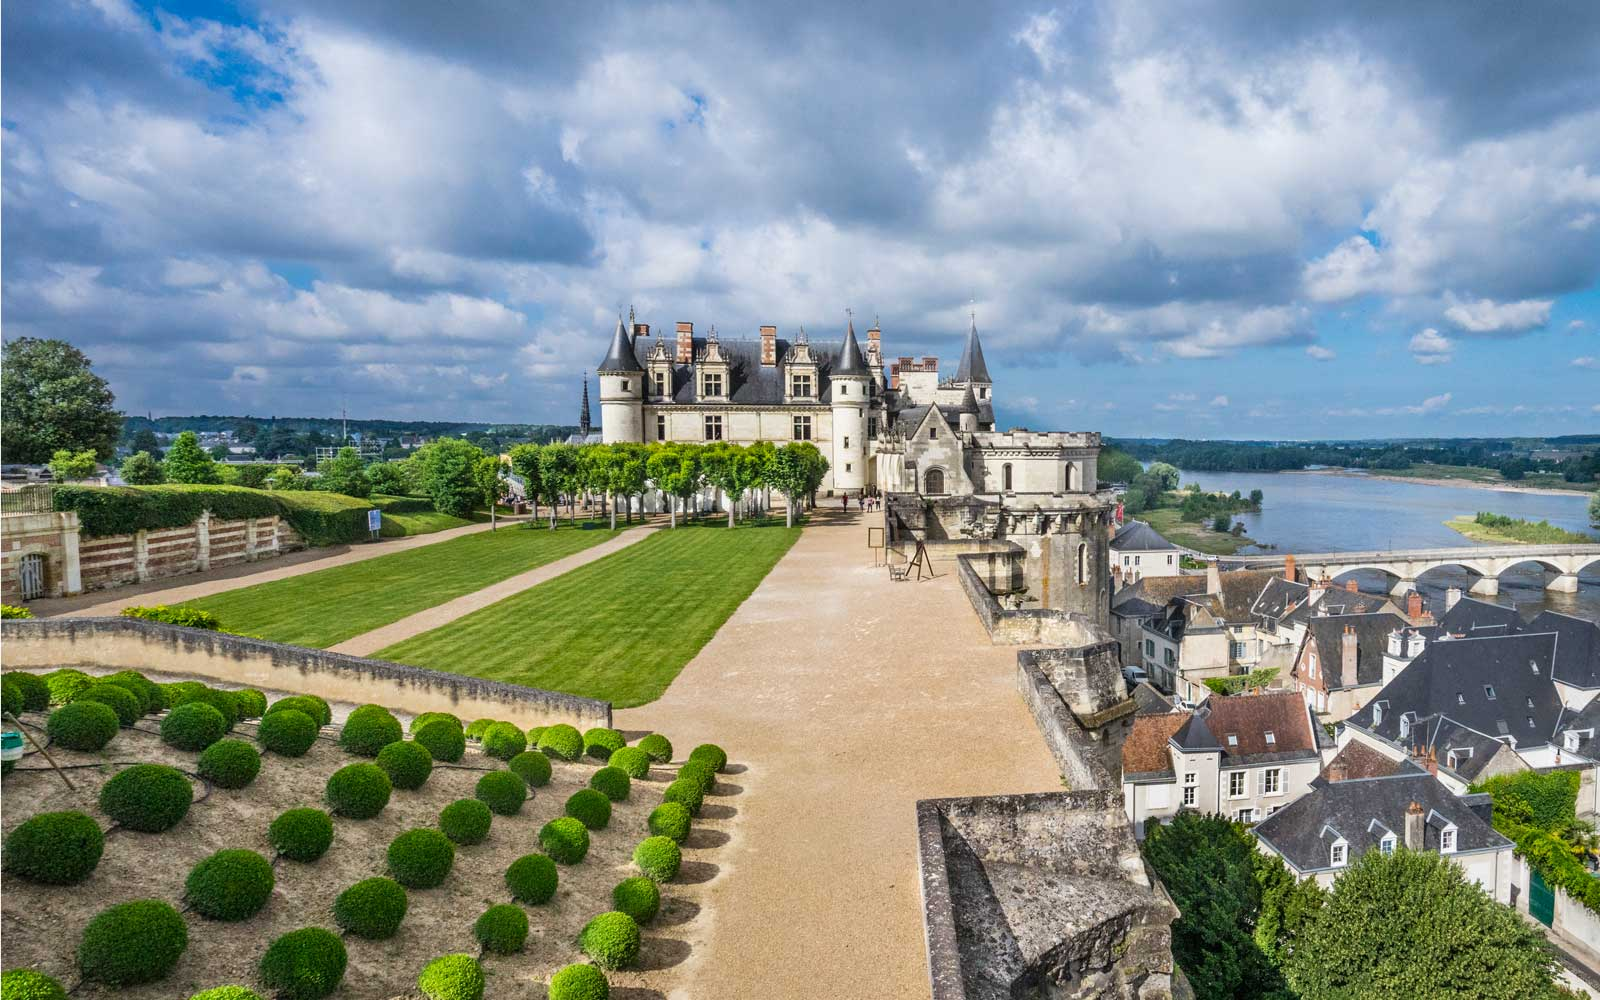 Royal Castle Château d'Amboise, view of the Royal residence from the Naples Terrace Renaissance garden